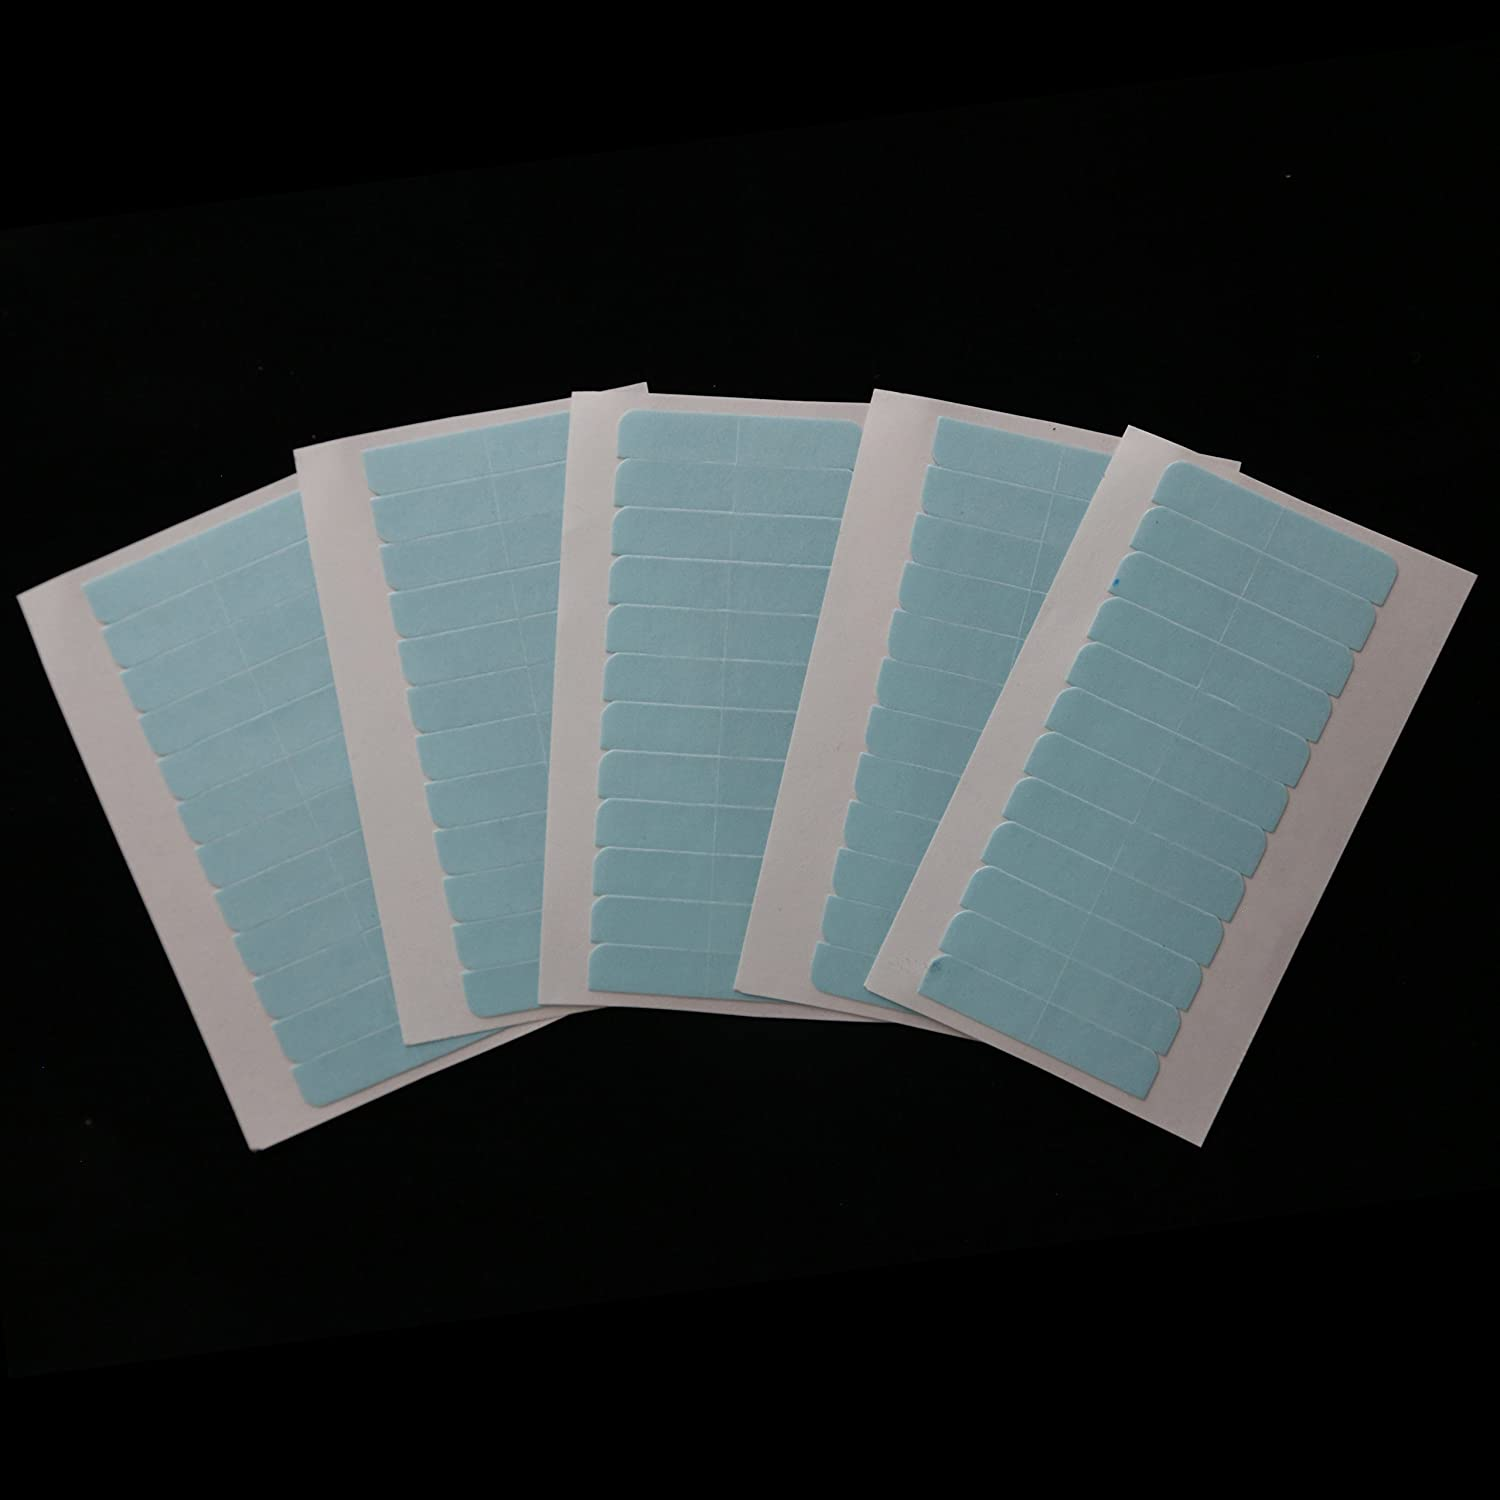 60 Tabs Precut Super Double Sided Adhesive Tape Skin Weft or Tape-in Hair Extension Replacement YILITE